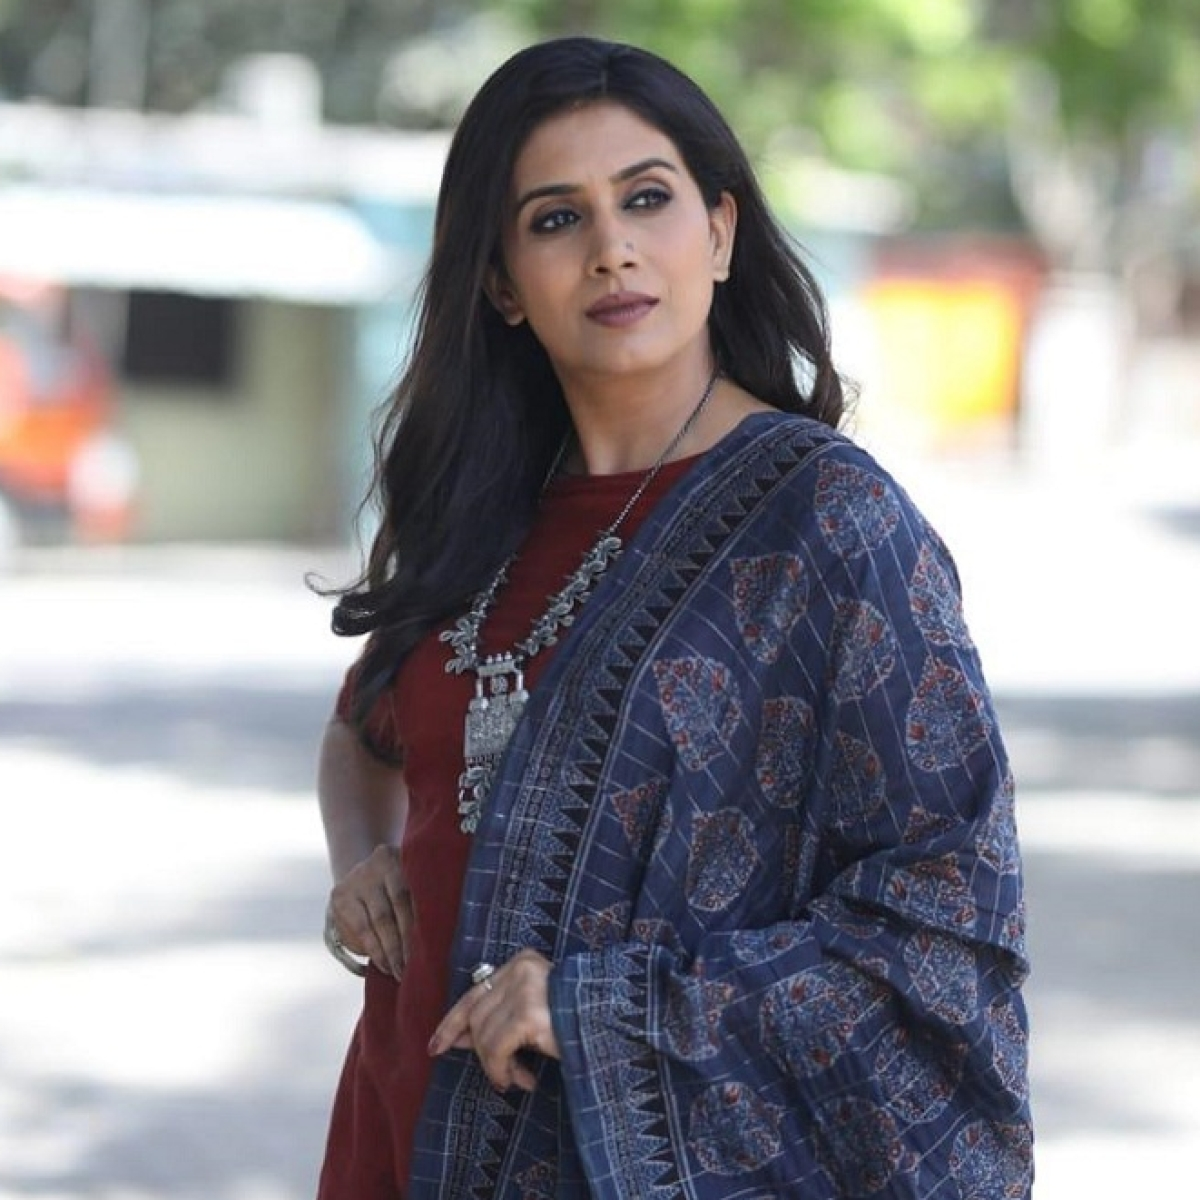 Sonali Kulkarni talks about Crime Patrol Satark's new series Justice Reloaded, her journey, and more...